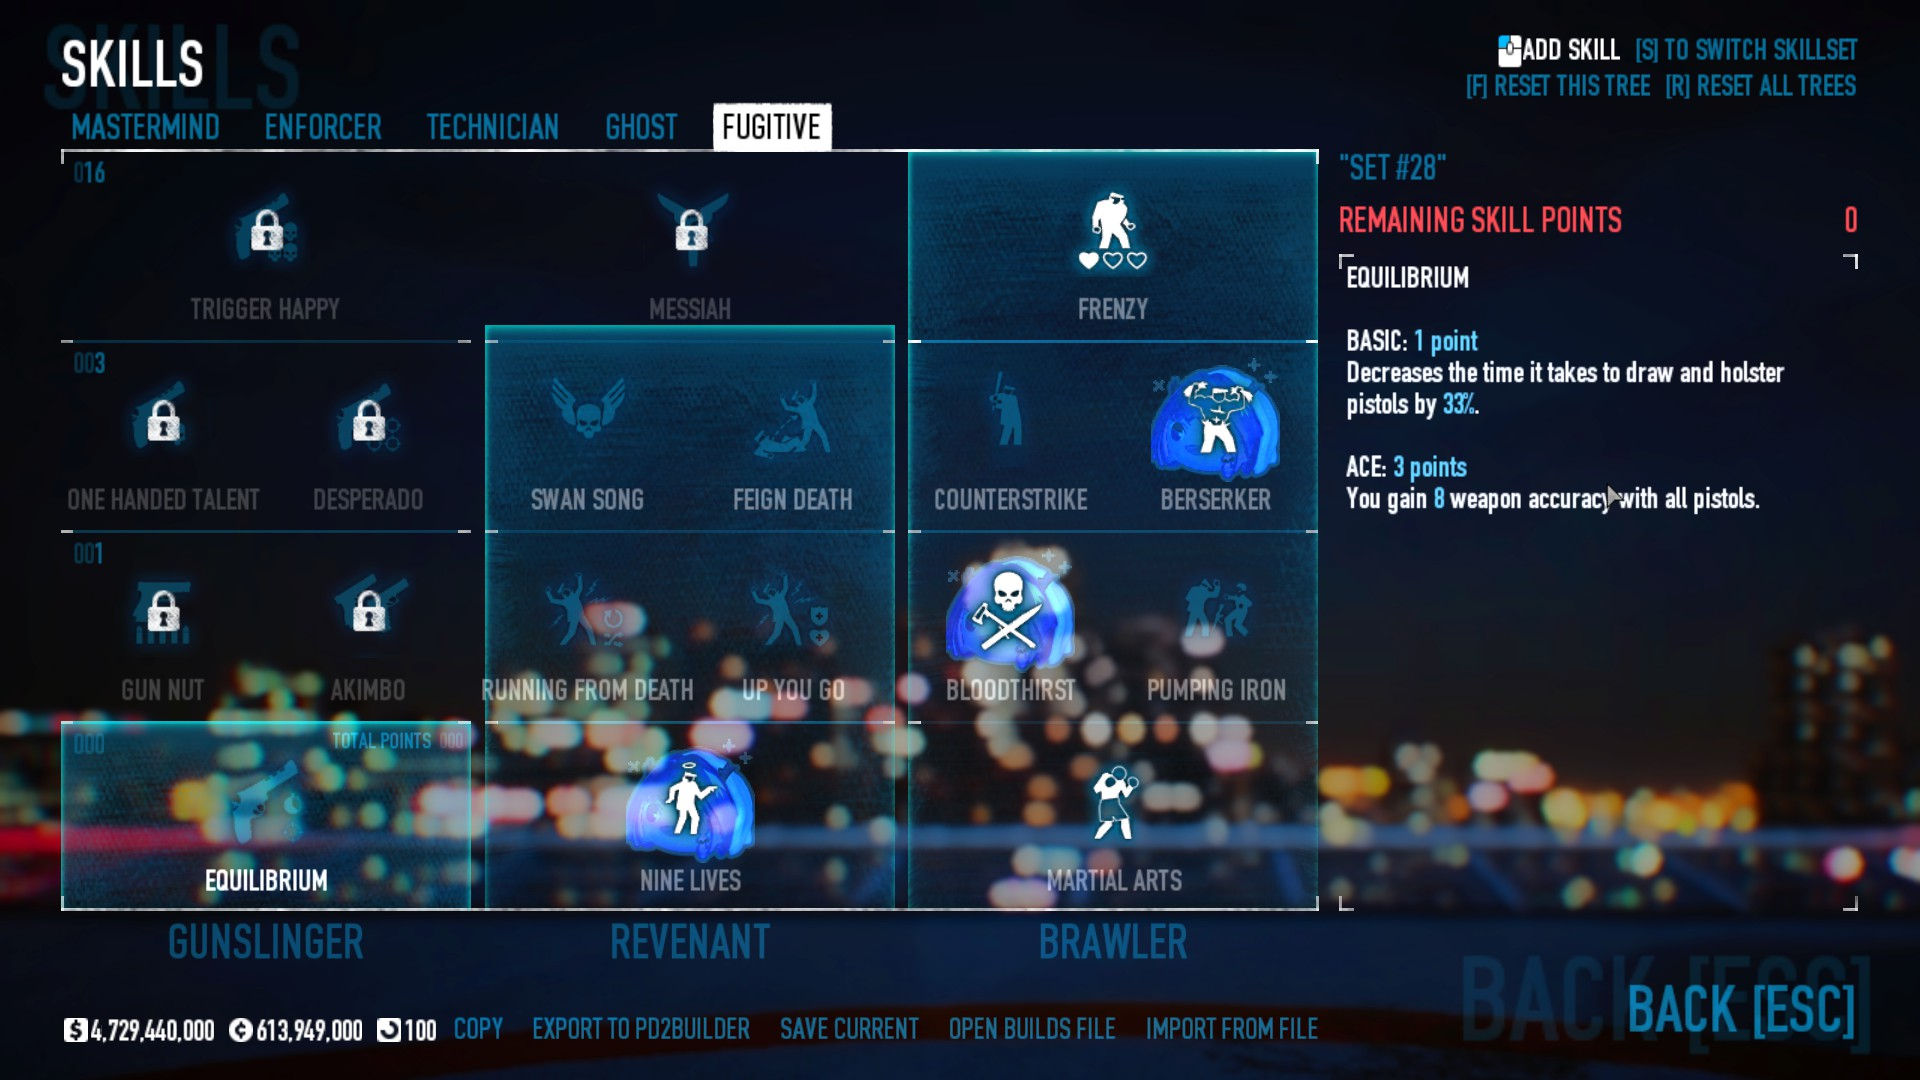 PAYDAY 2 - DSOD No DLC Build + Weapons Attachments & Class - Fugitive Skills - 34D712A